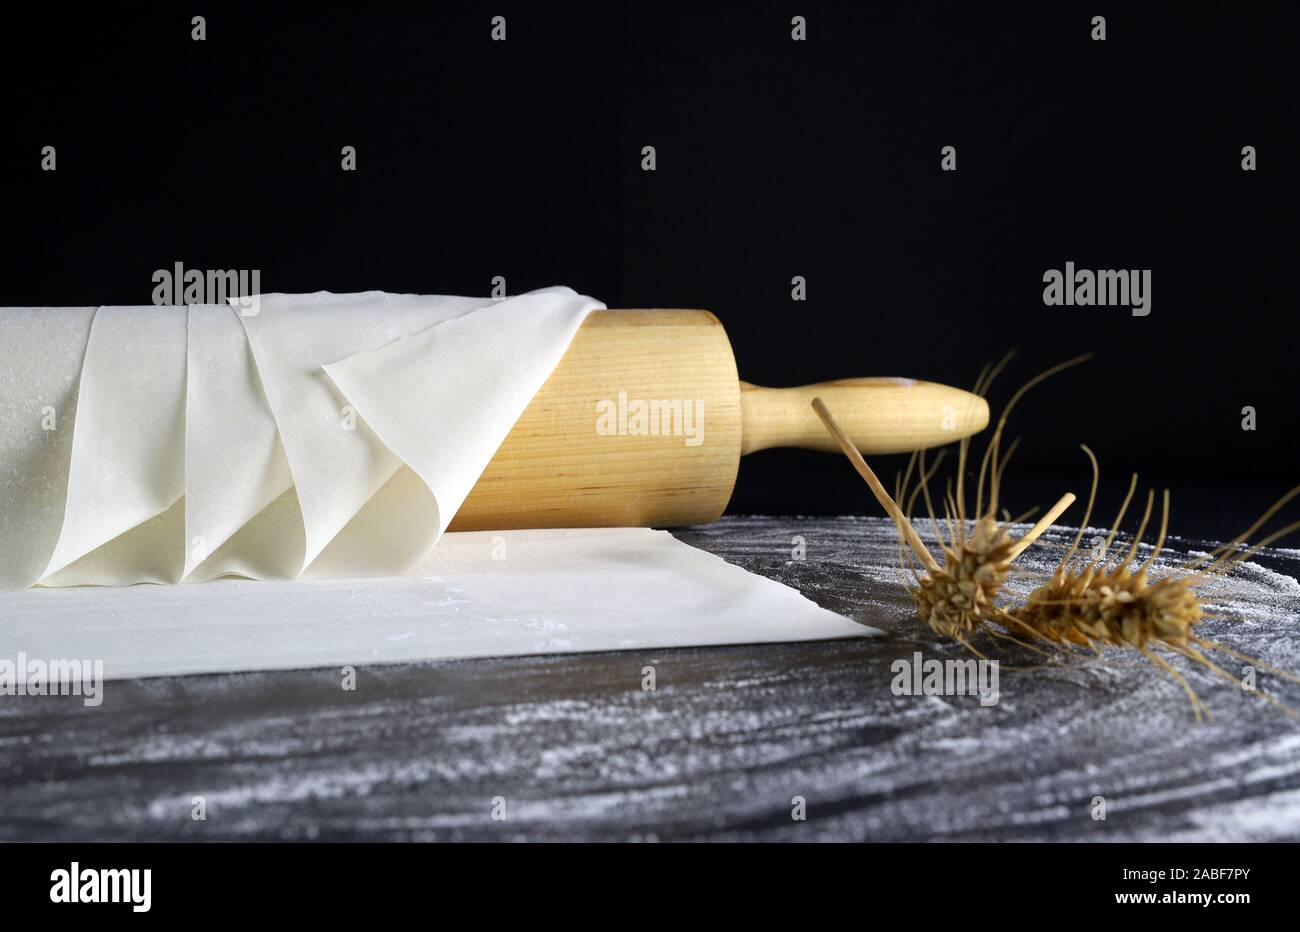 Closeup of phyllo dough on a floured table. Dark background with rolling pin and ears of wheat. Stock Photo